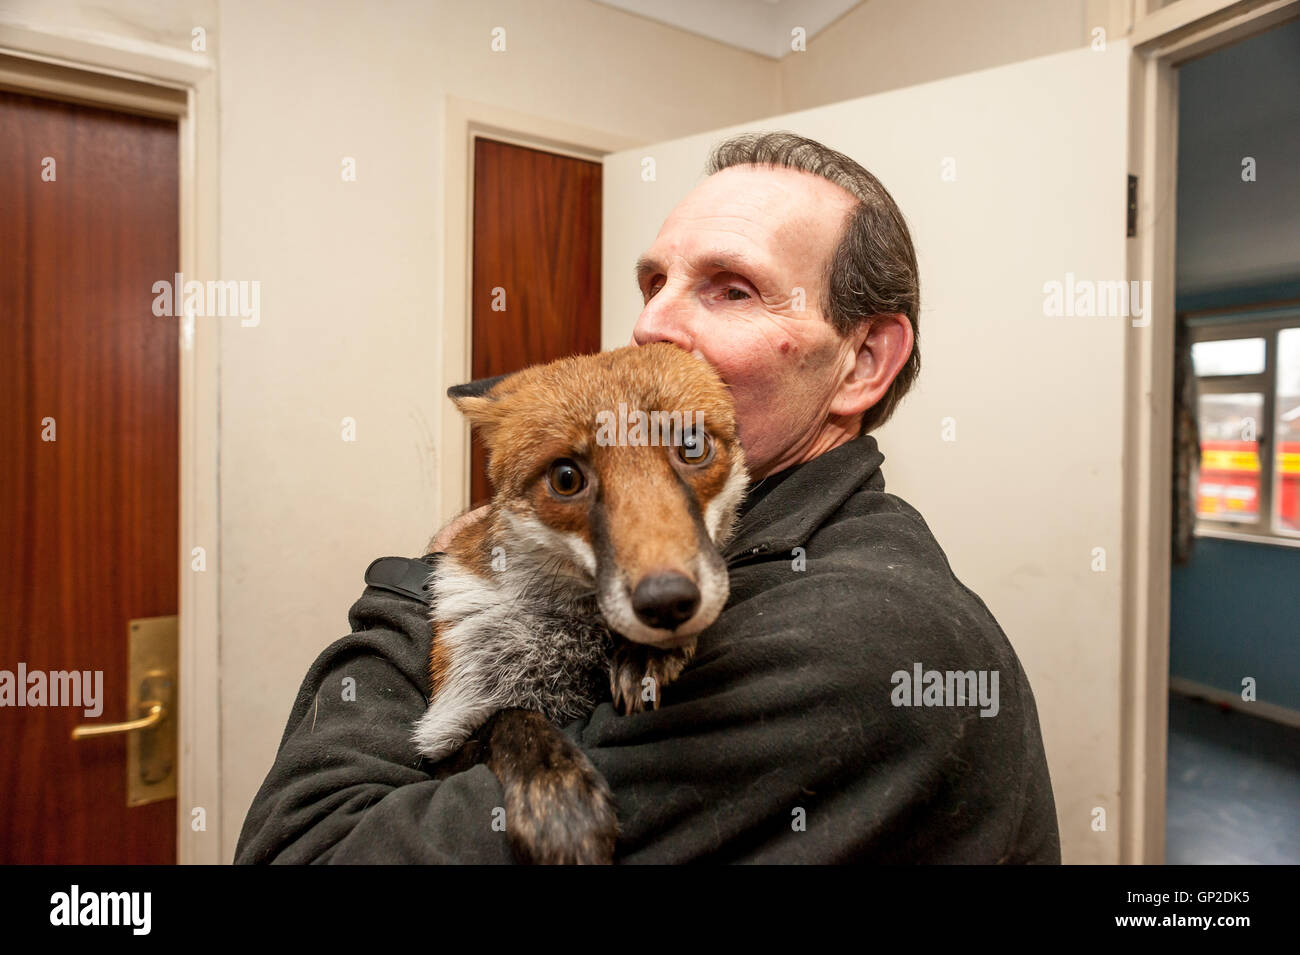 Steve Edgington, of Hassocks, West Sussex, with his pet fox, Miss Snooks. - Stock Image